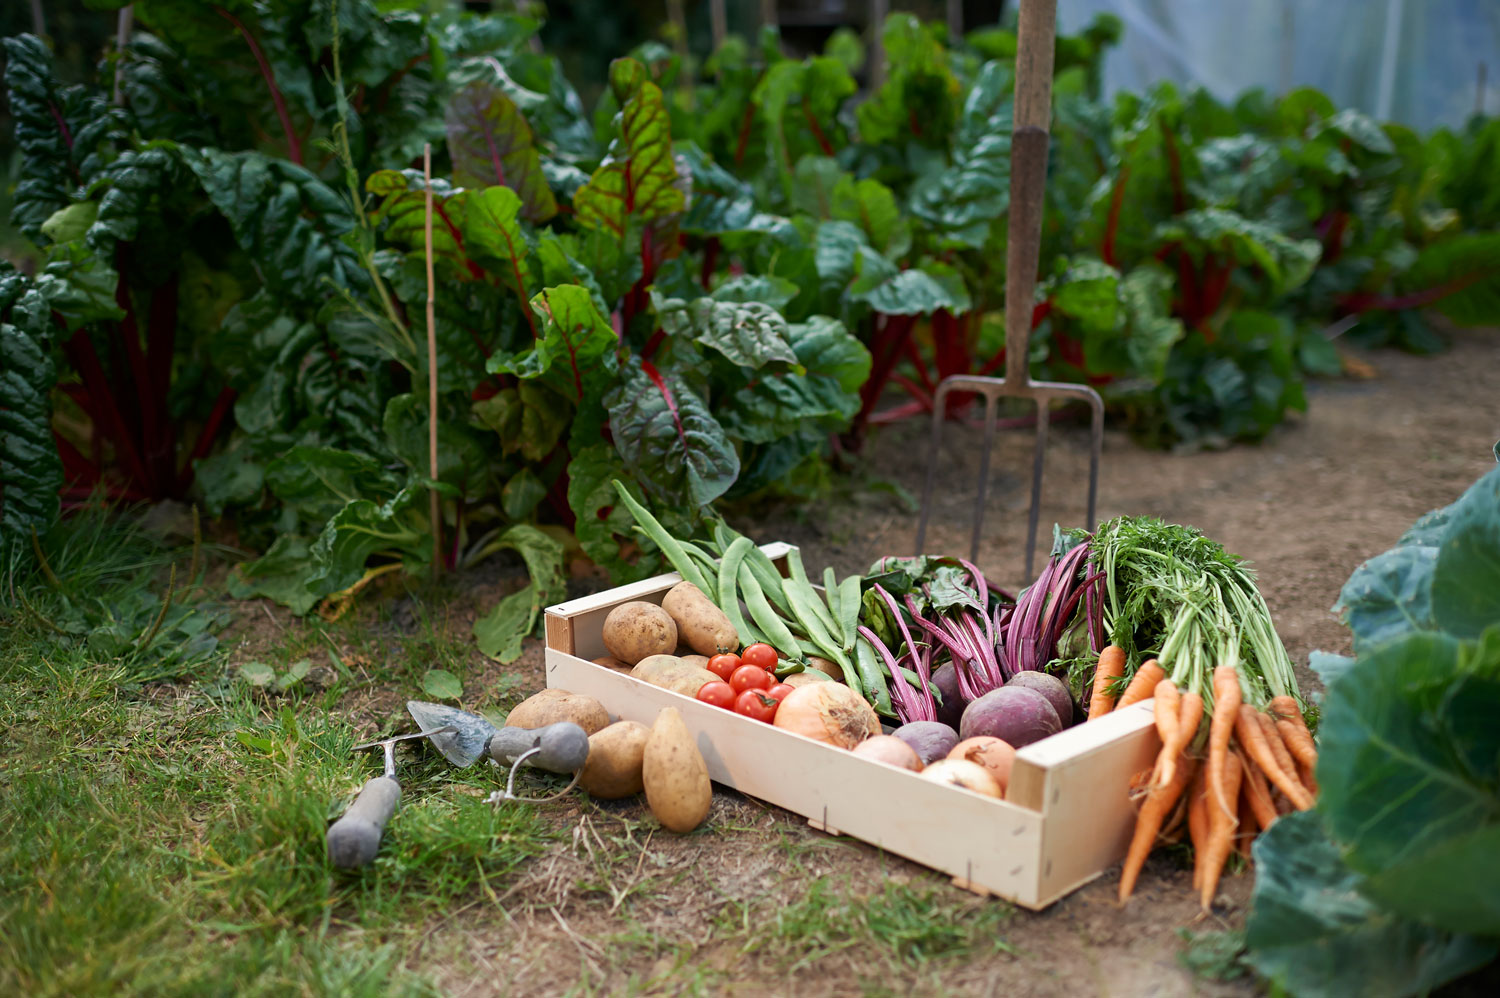 A wooden box filled with freshly picked vegetables from the garden.